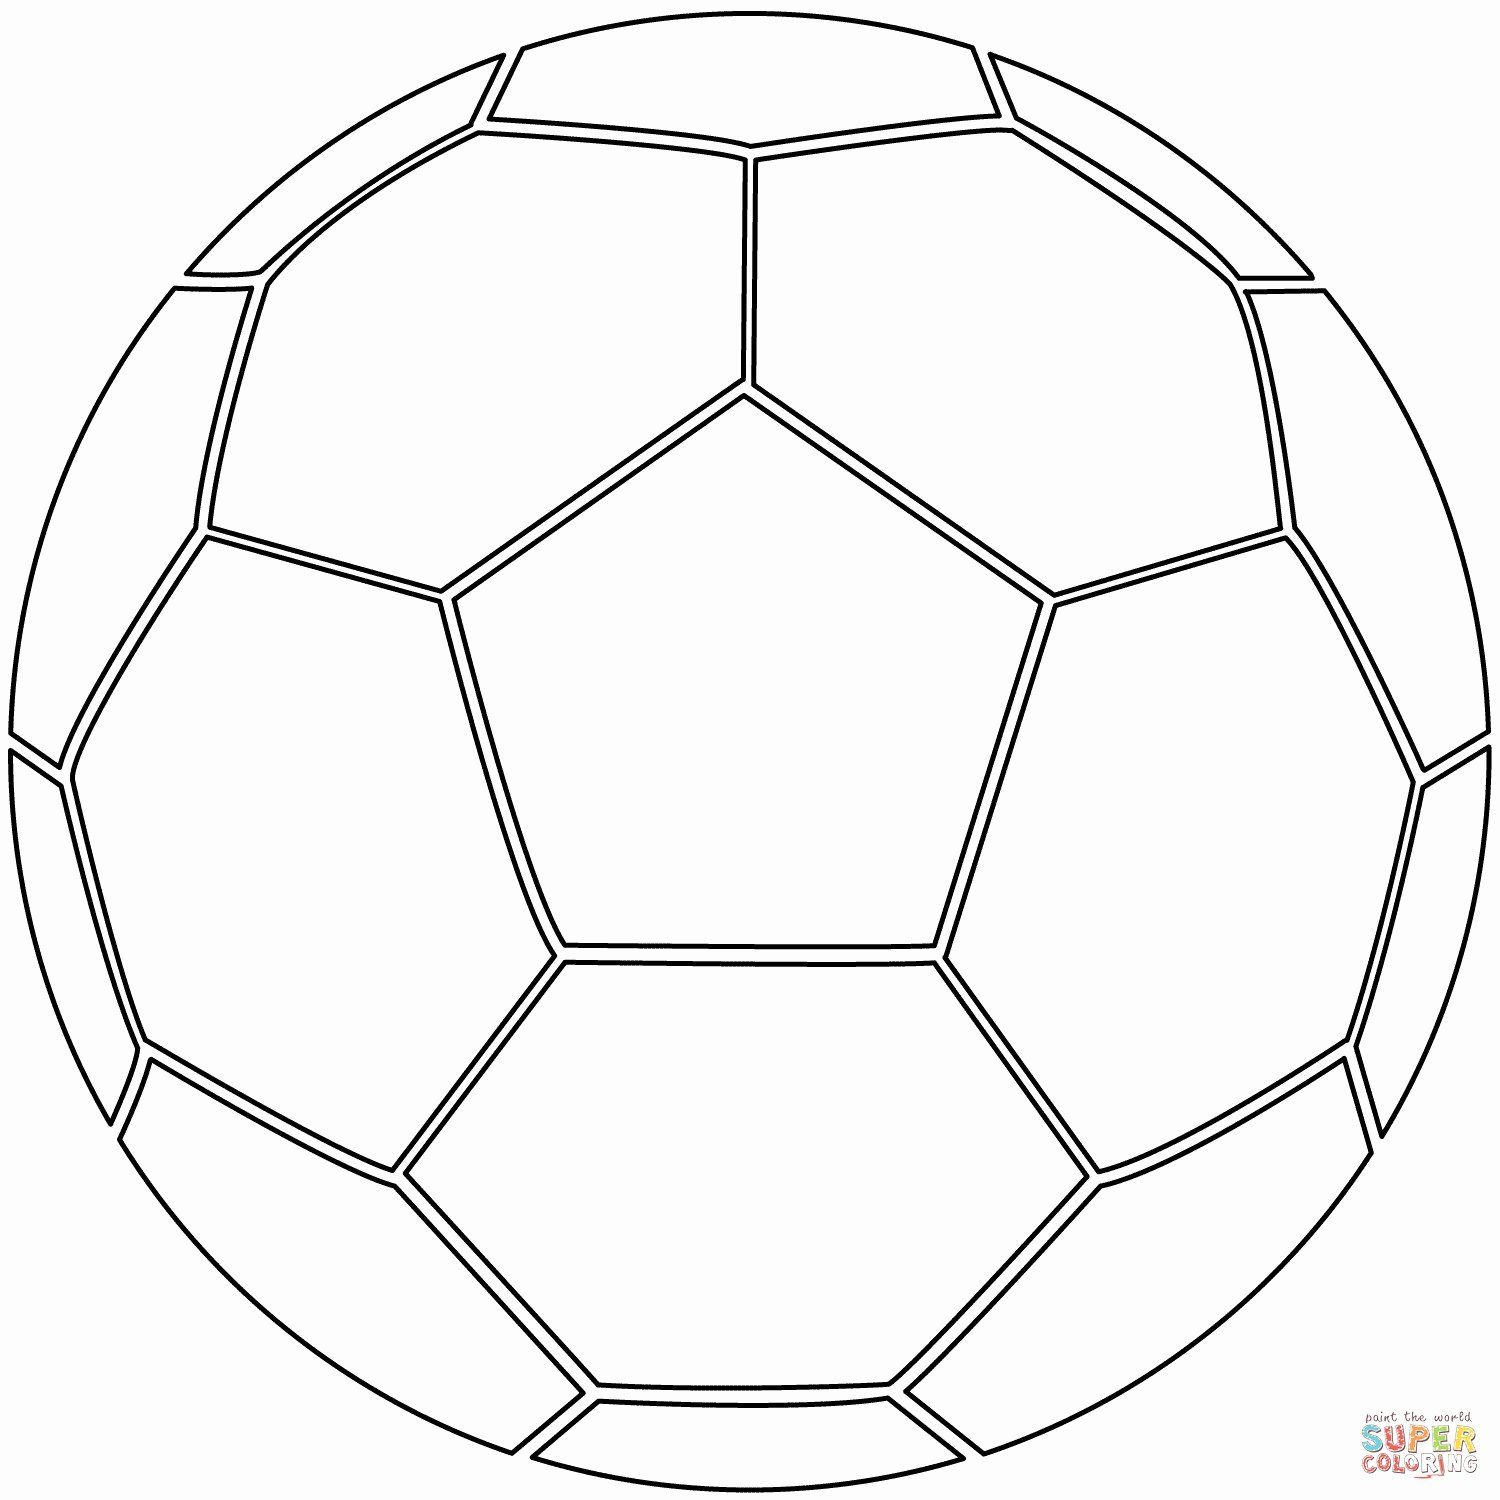 Sport Coloring Pictures Best Of Soccer Ball Colouring Page Mrsztuczkens Sports Coloring Pages Football Coloring Pages Soccer Ball